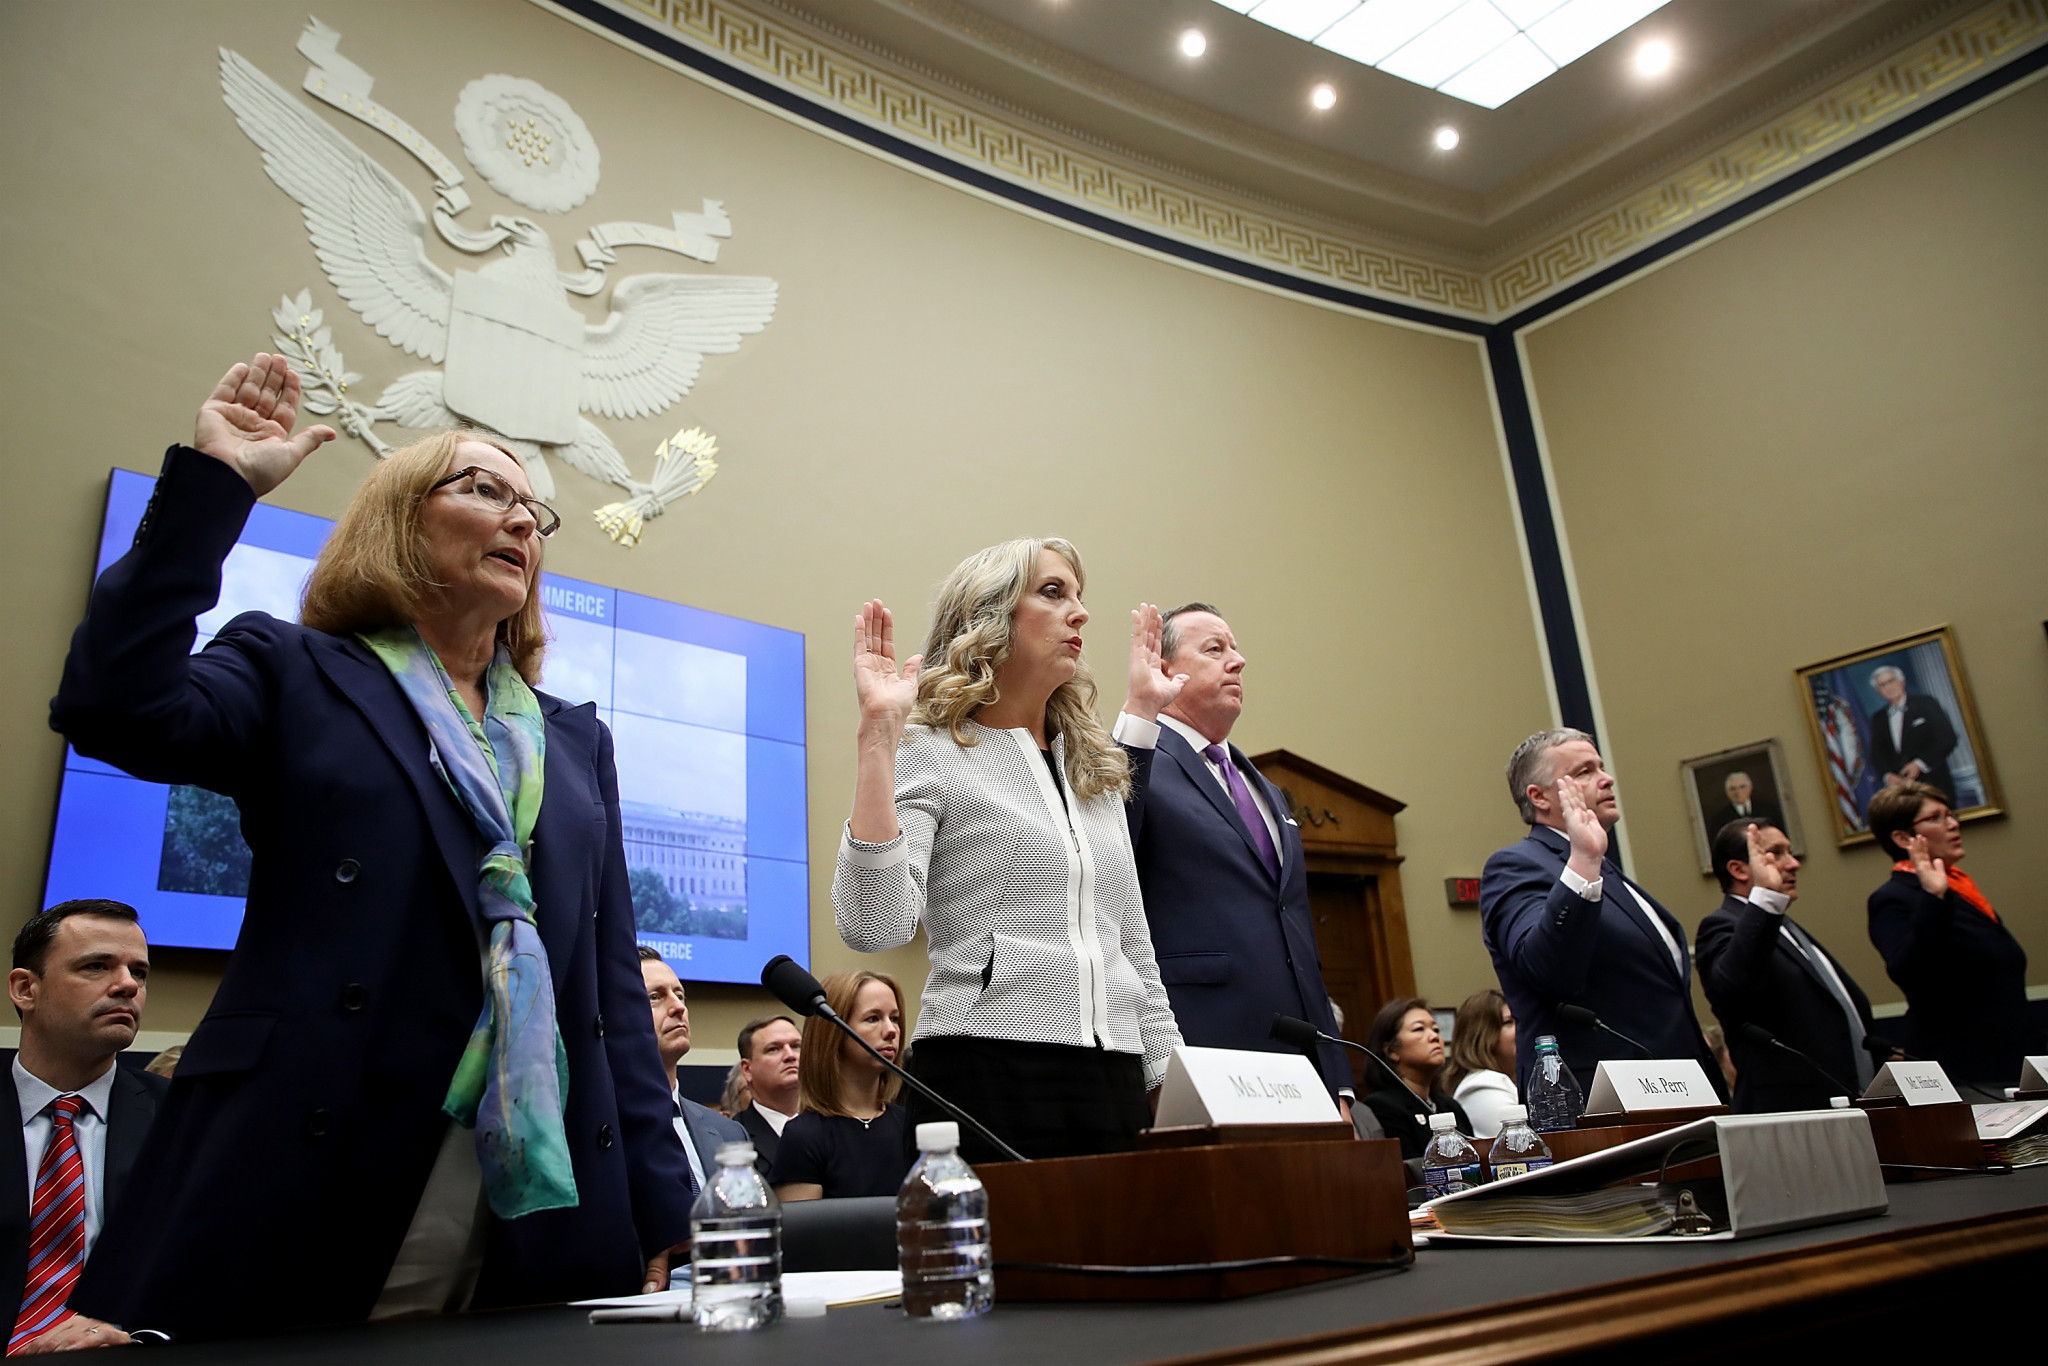 Kerry Perry, second left, testified at a House of Representatives Subcommittee yesterday ©Getty Images